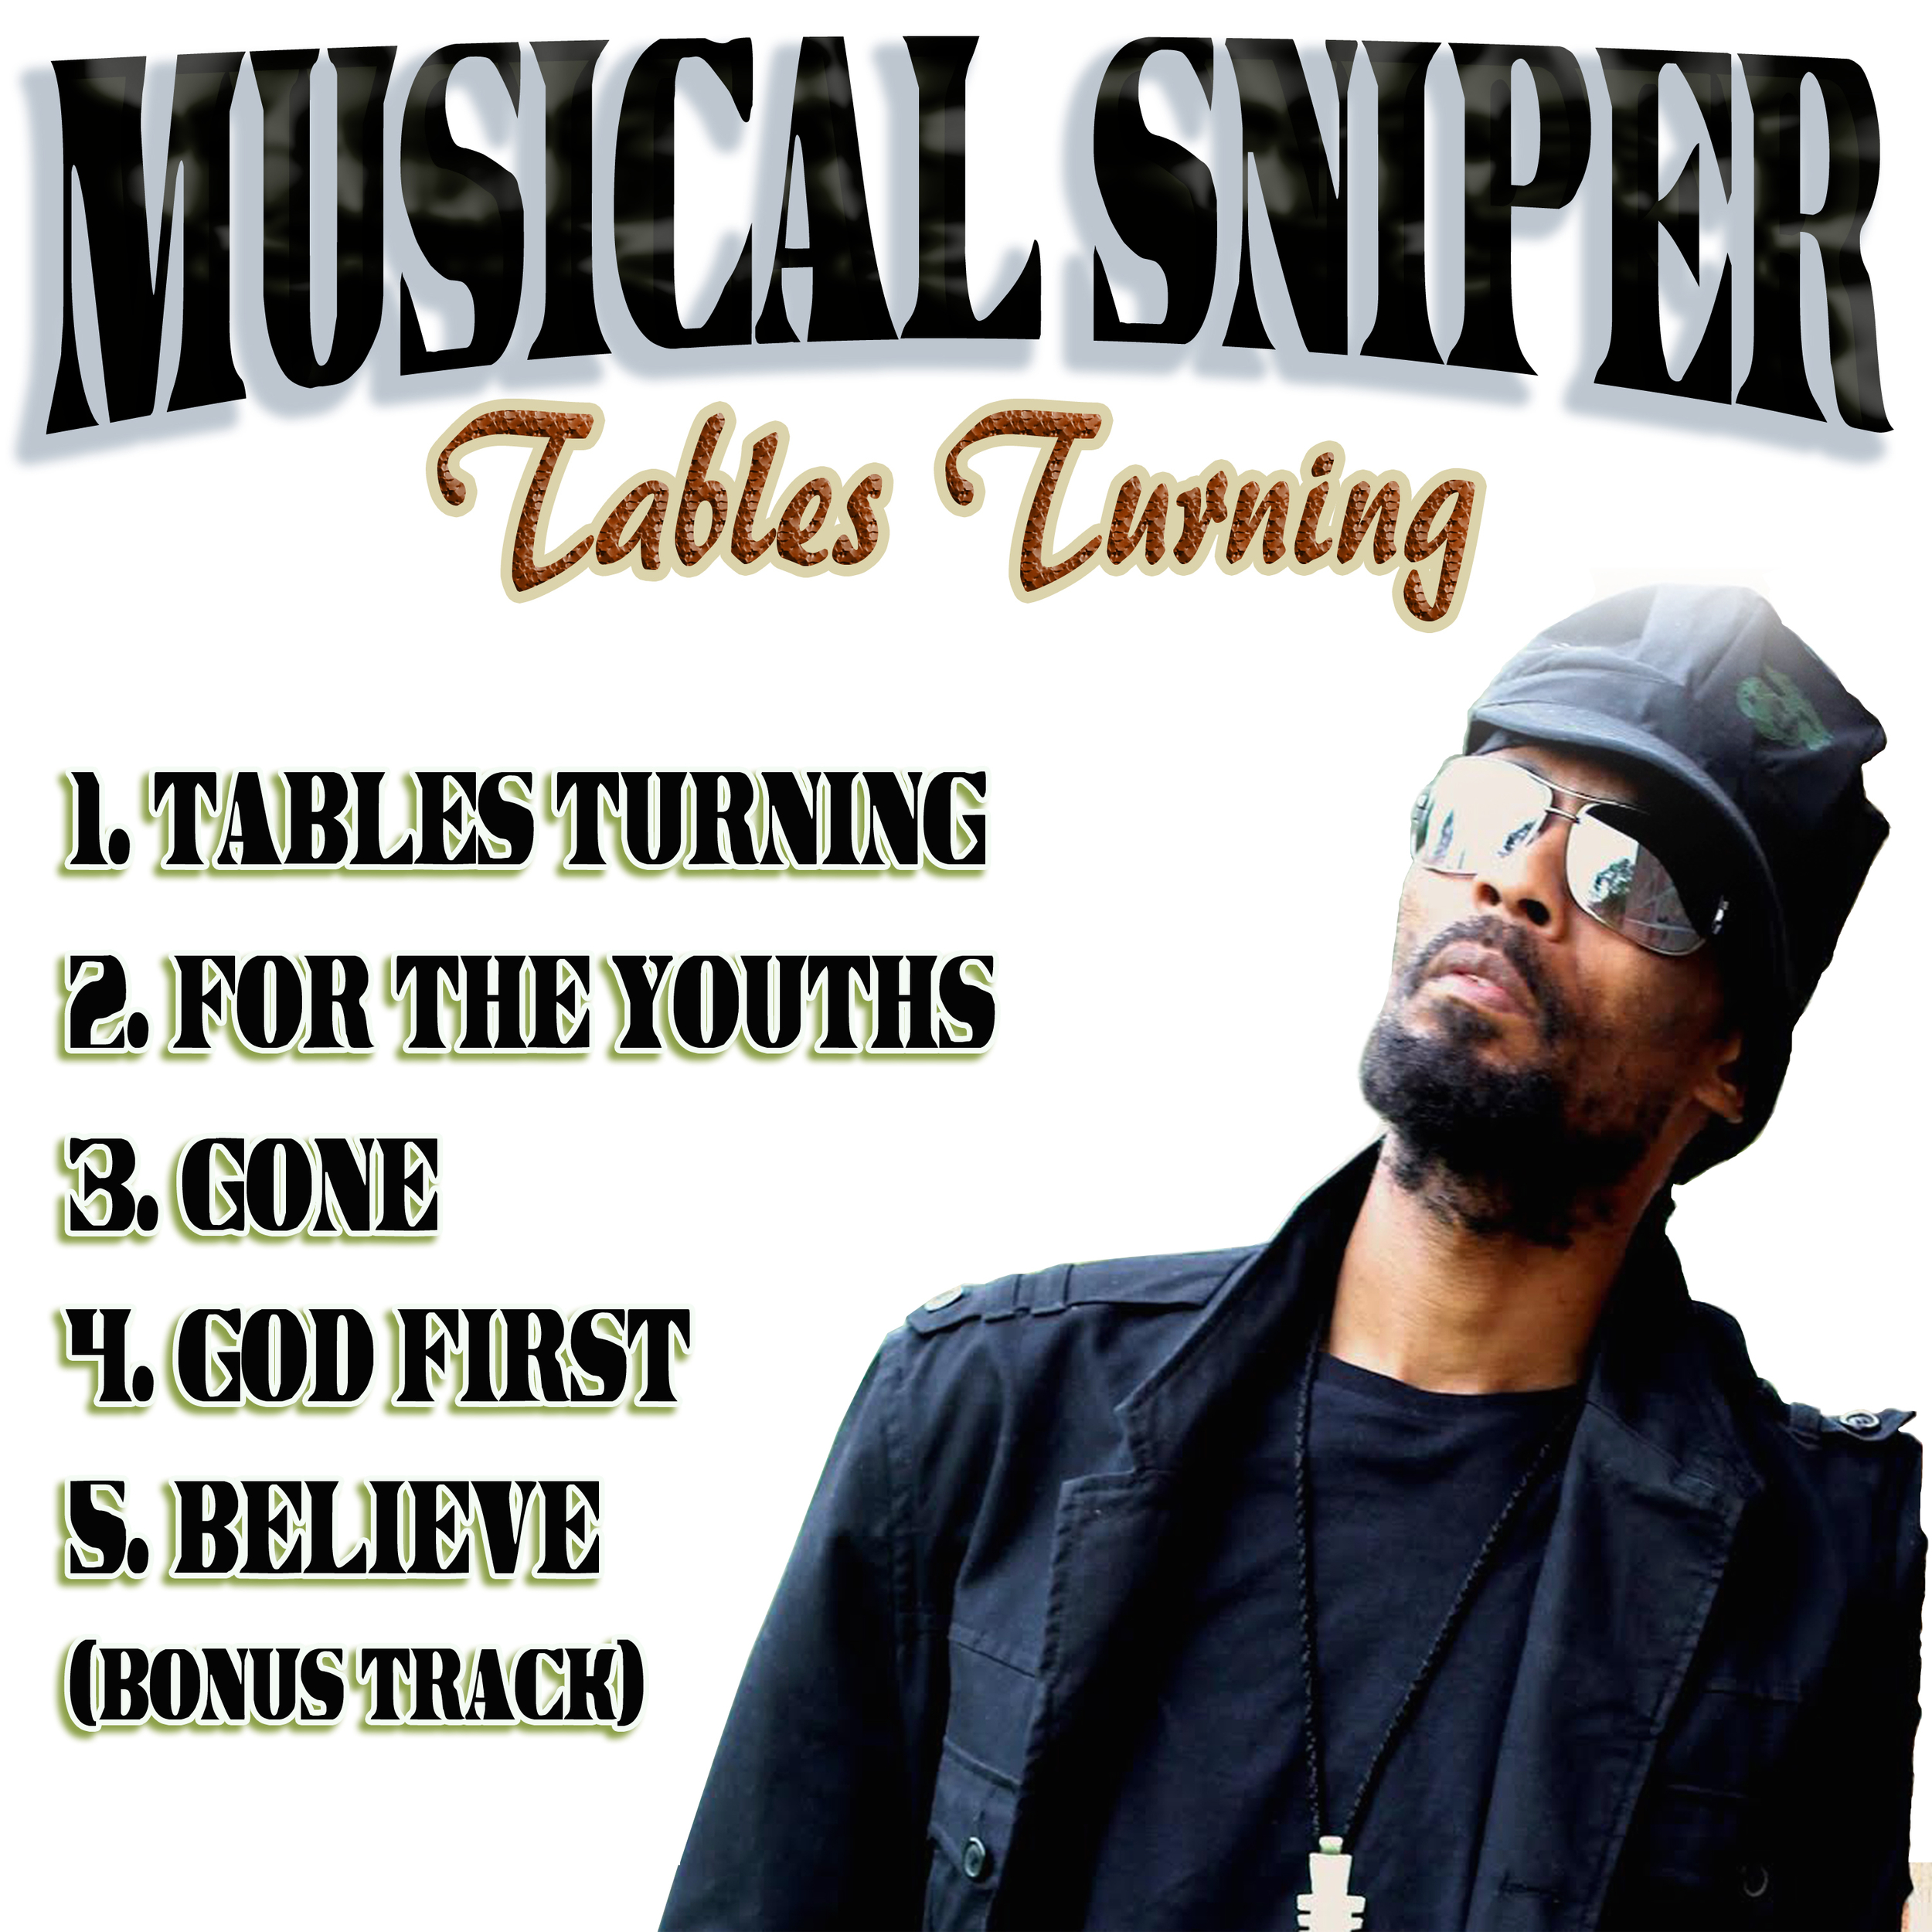 Musical Sniper - Tables Turning EP Cover